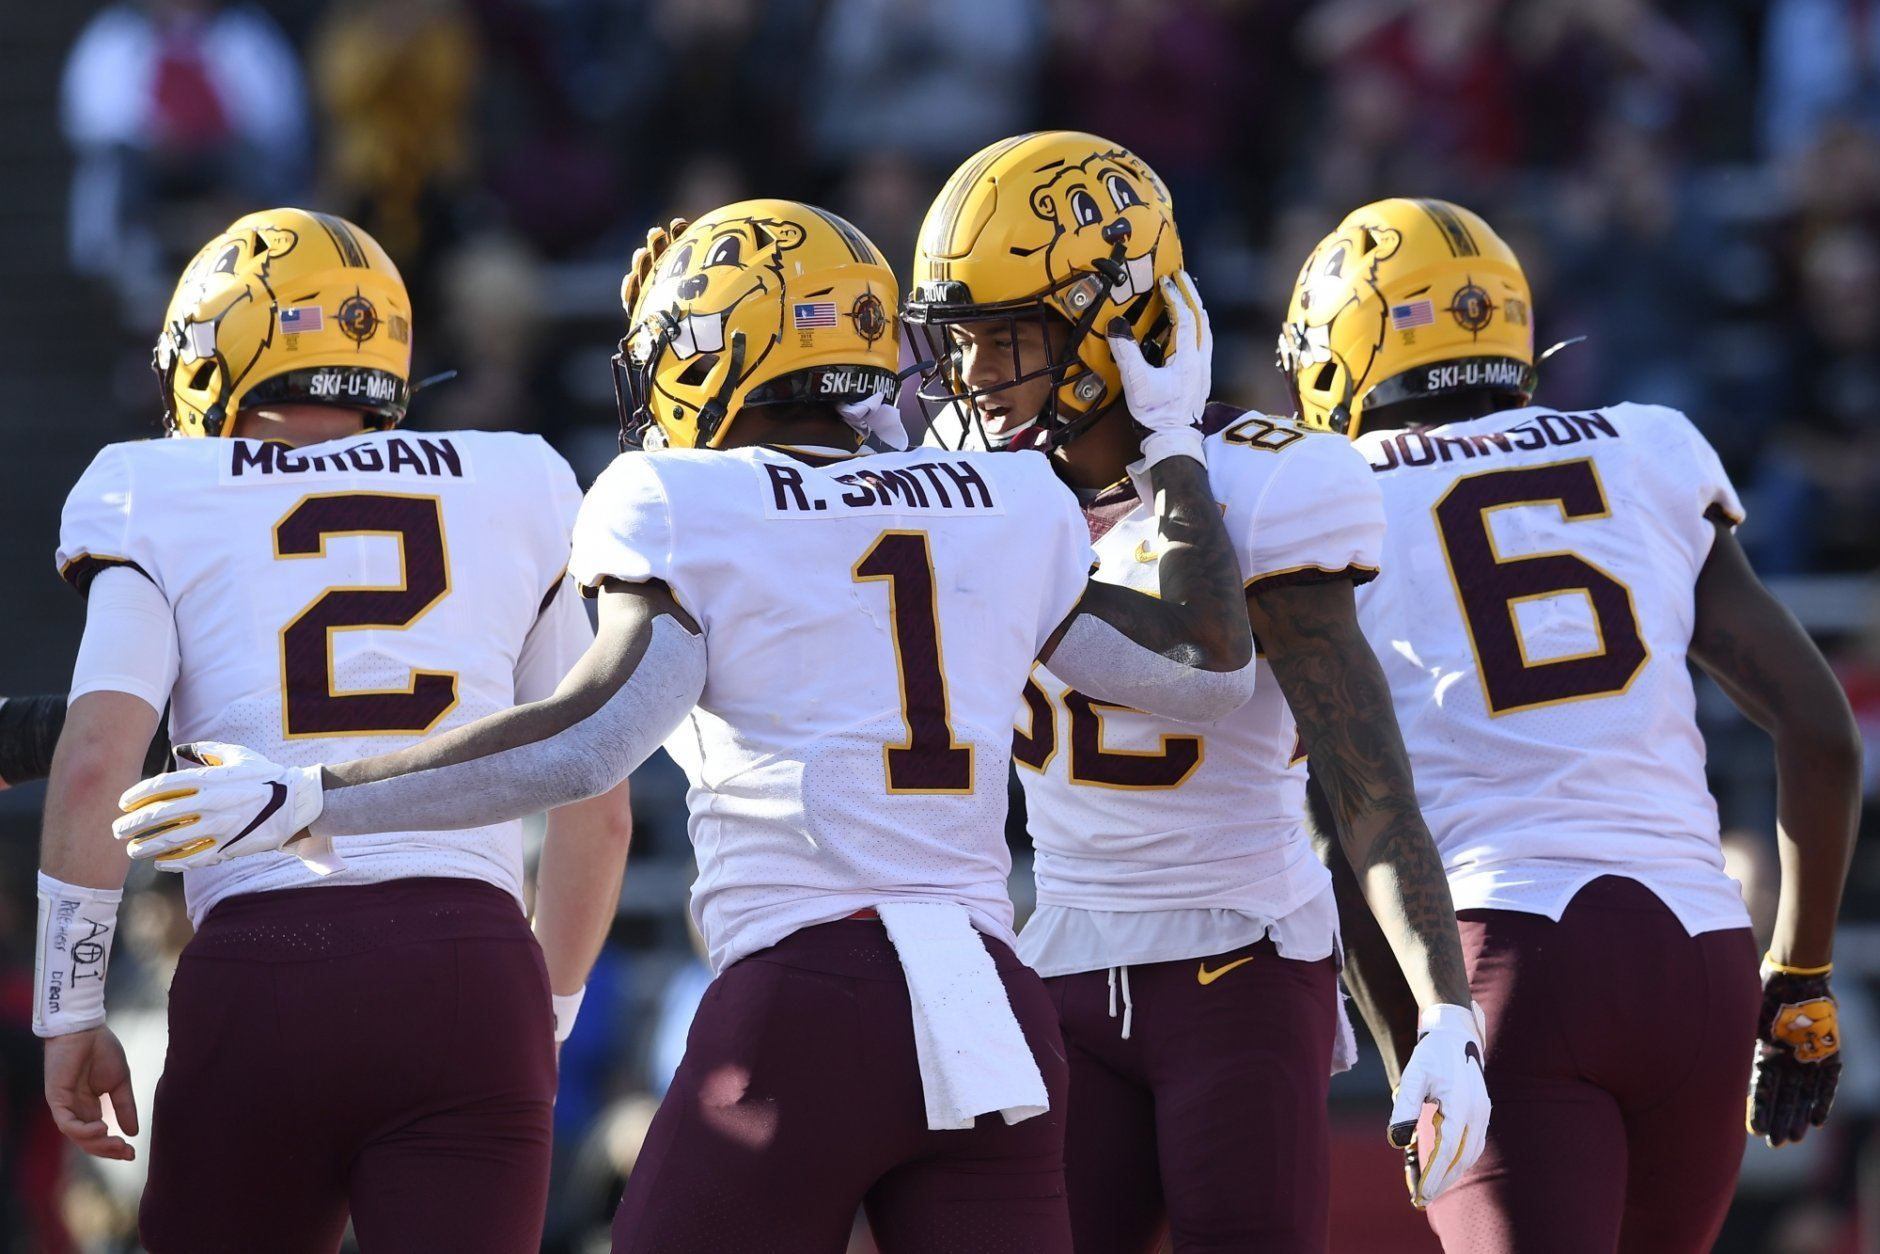 <p><strong>No. 17 Minnesota (8-0): </strong>Win Big Ten West with one or fewer losses, win Big Ten championship game</p> <p>The lowest-ranked undefeated team remaining, the Gophers lack any true marquee wins. But they'll certainly have the chance to change that, facing Penn State, Iowa and Wisconsin all this month. Win out, they're in. Lose one of those games and they'll still win the Big Ten West. Would that, plus a conference title be enough?</p>